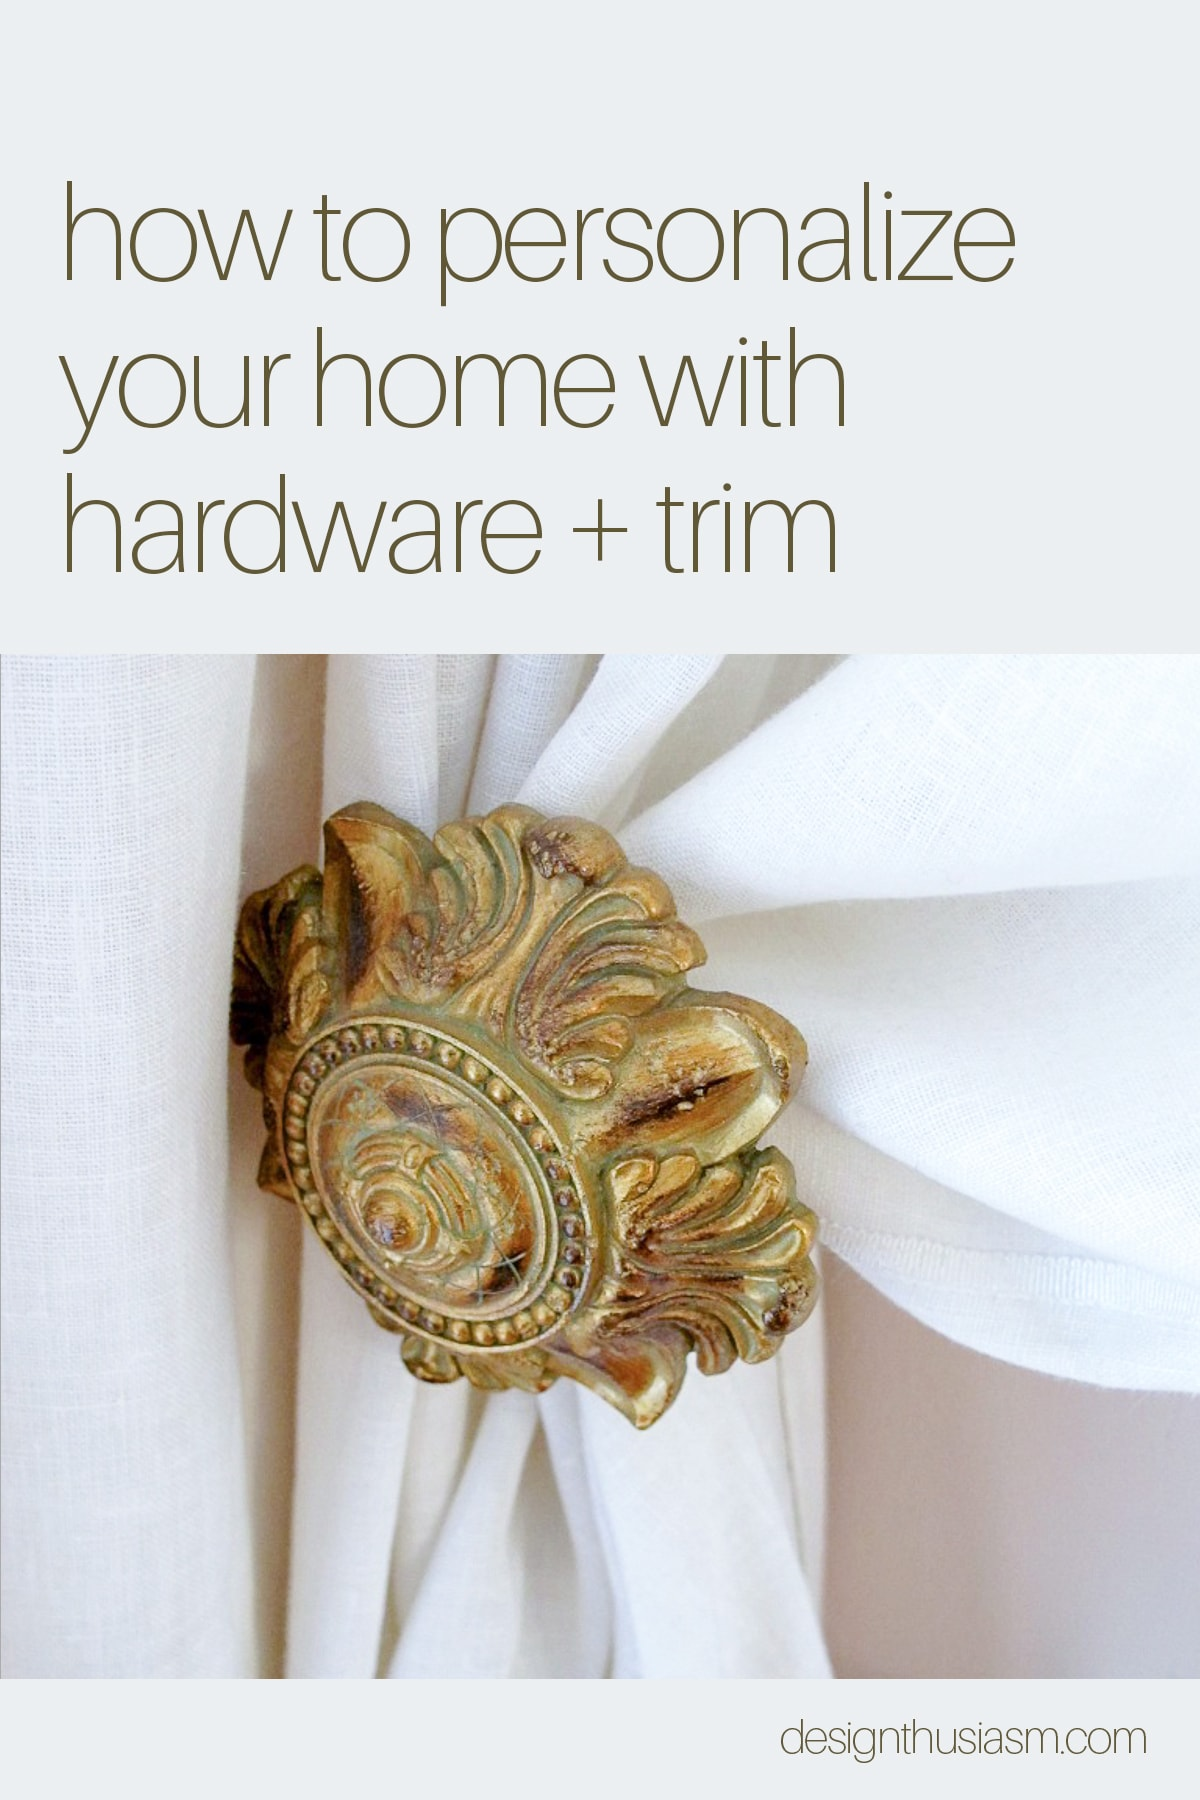 home hardware and trim